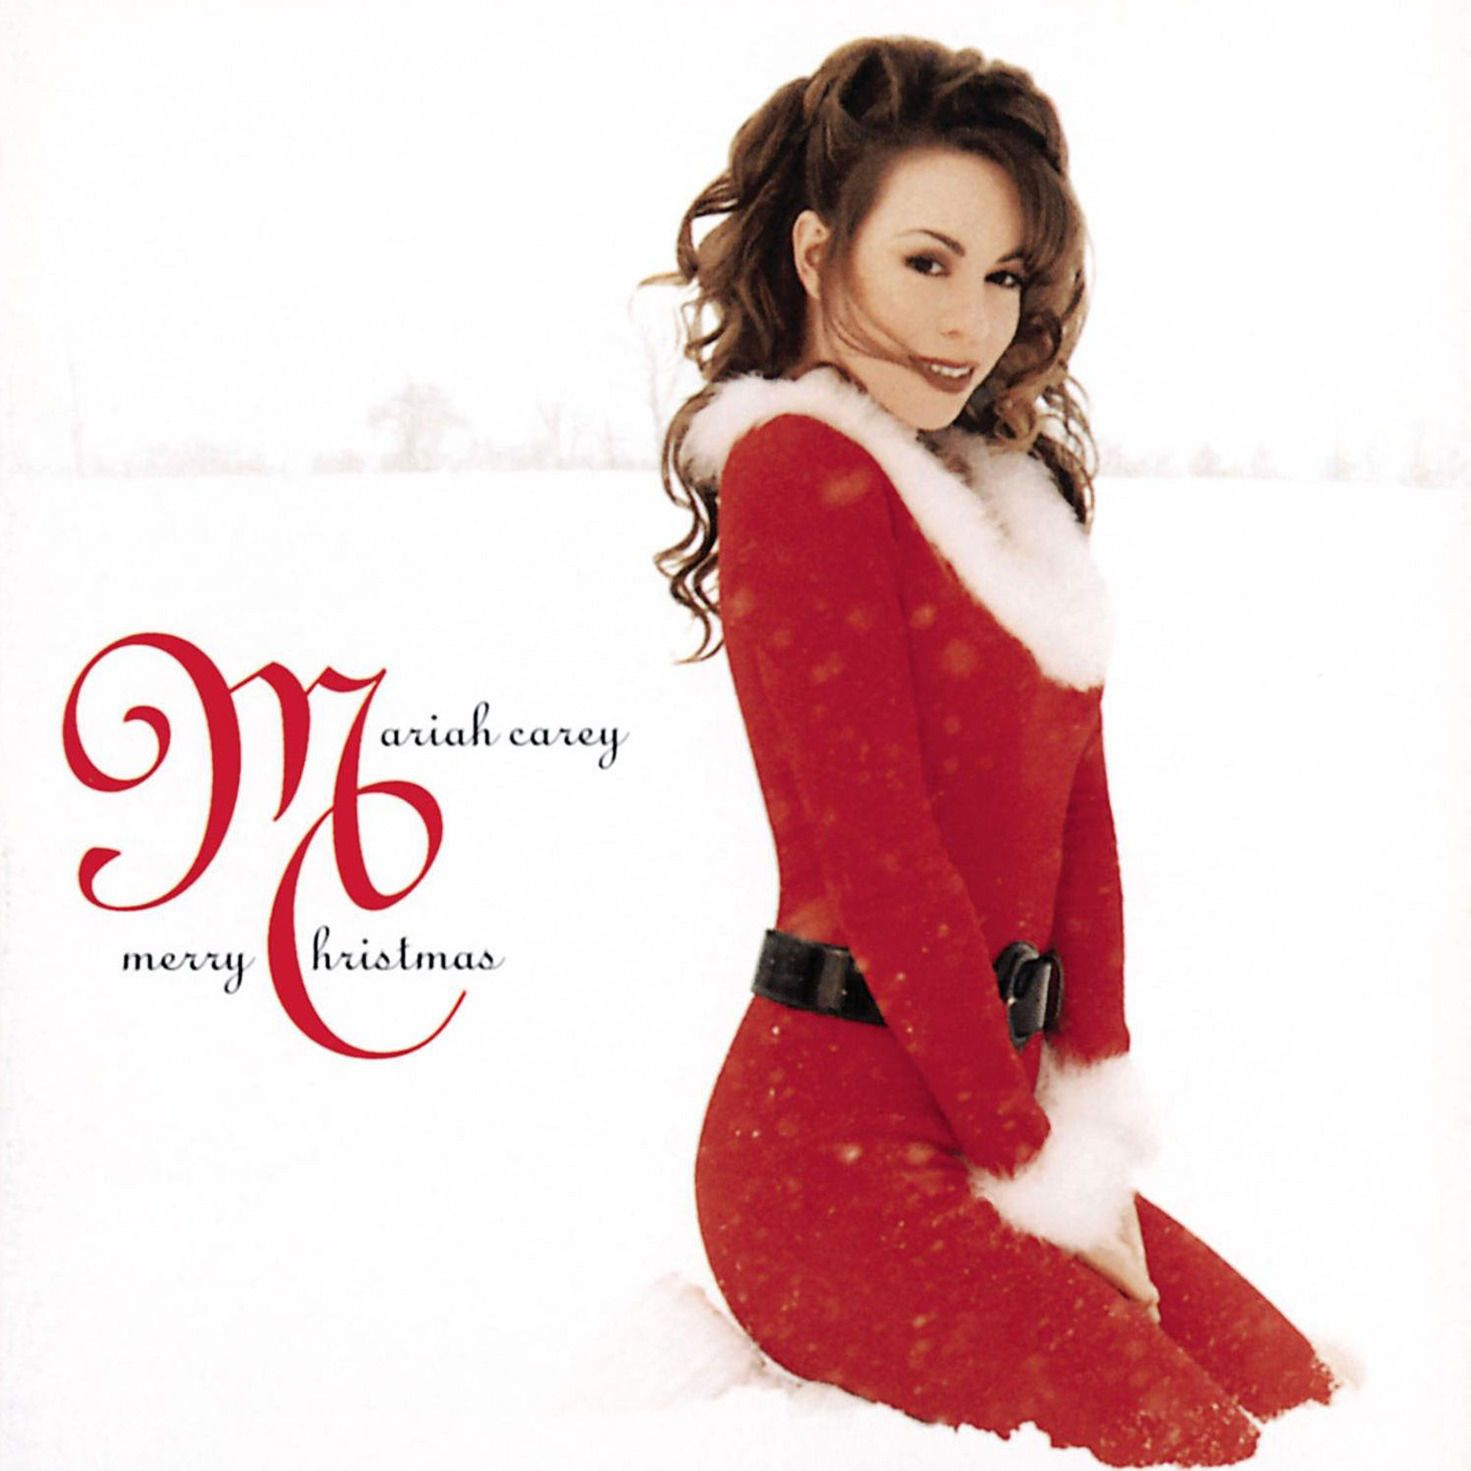 Mariah Carey - Merry Christmas album cover